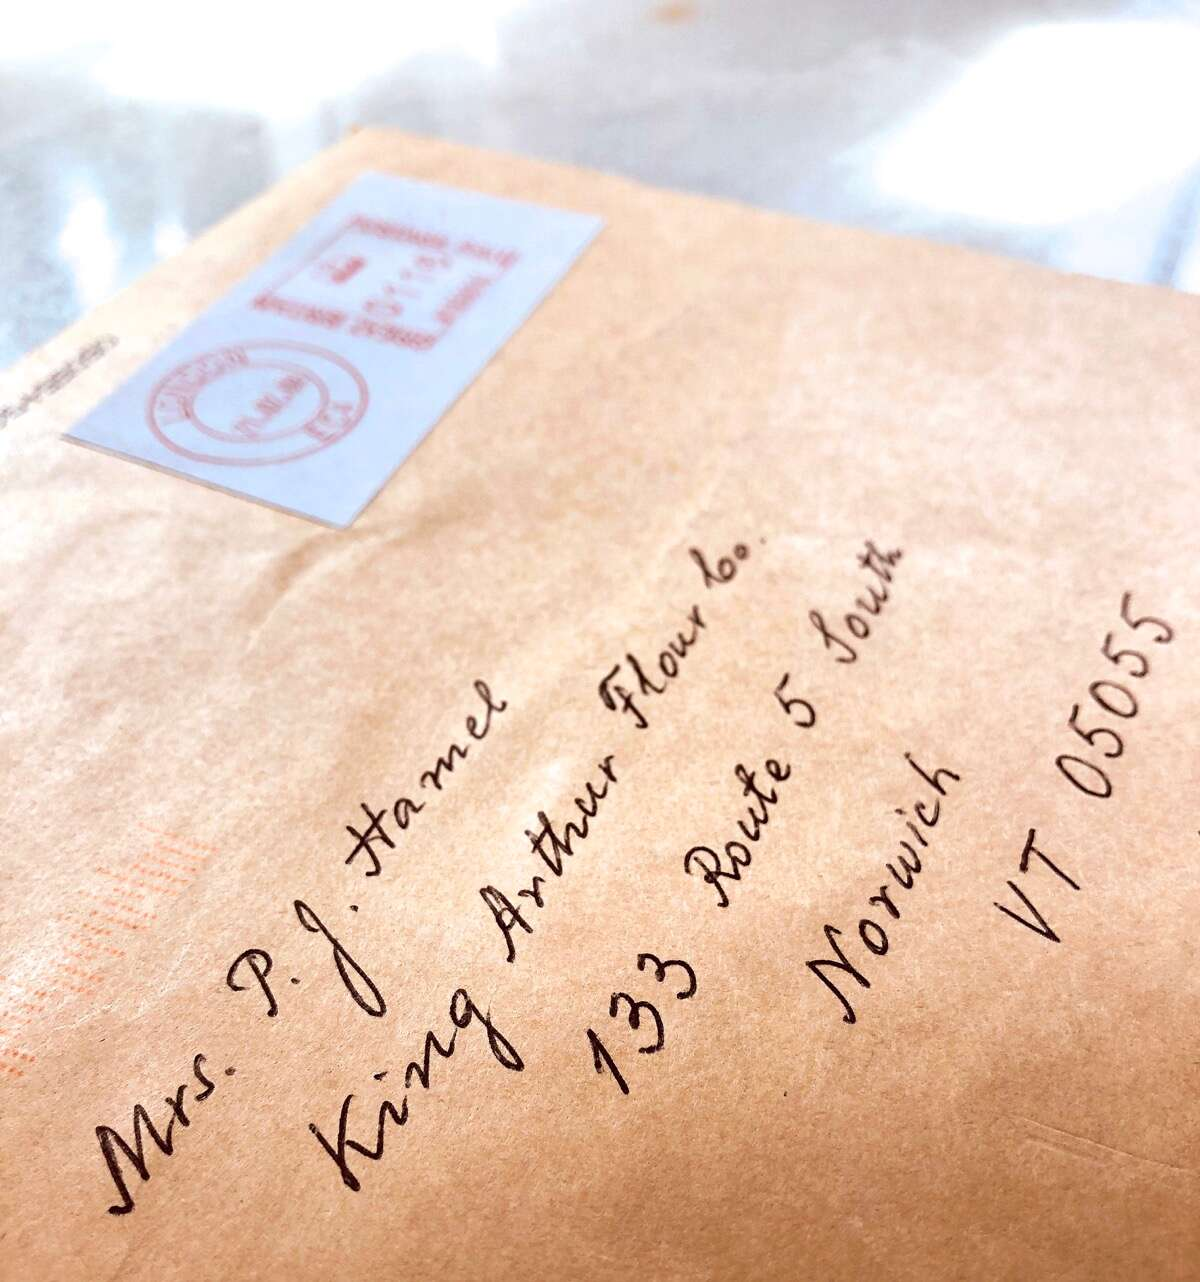 An envelope hand-addressed to King Arthur Flour.